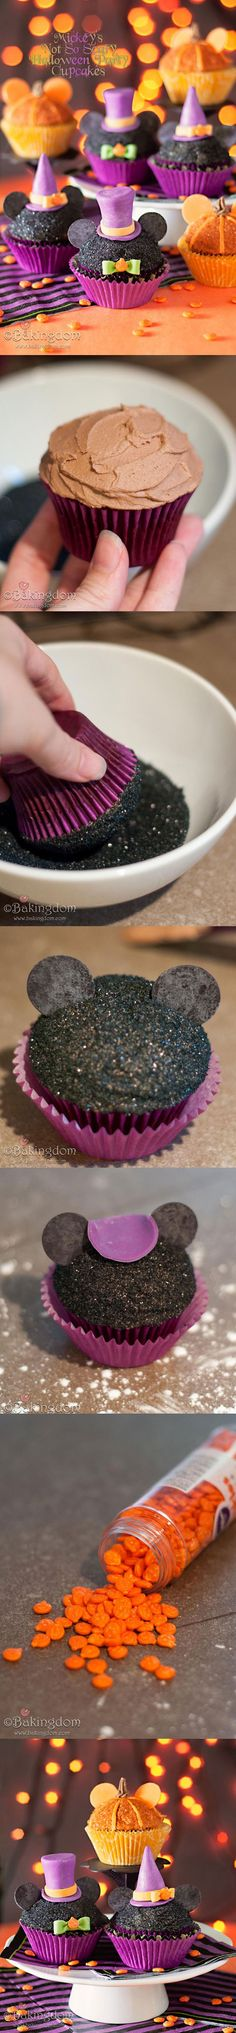 Mickey's Not So Scary Halloween Party Cupcakes made with glittering sugar, Neco wafers and fondant.